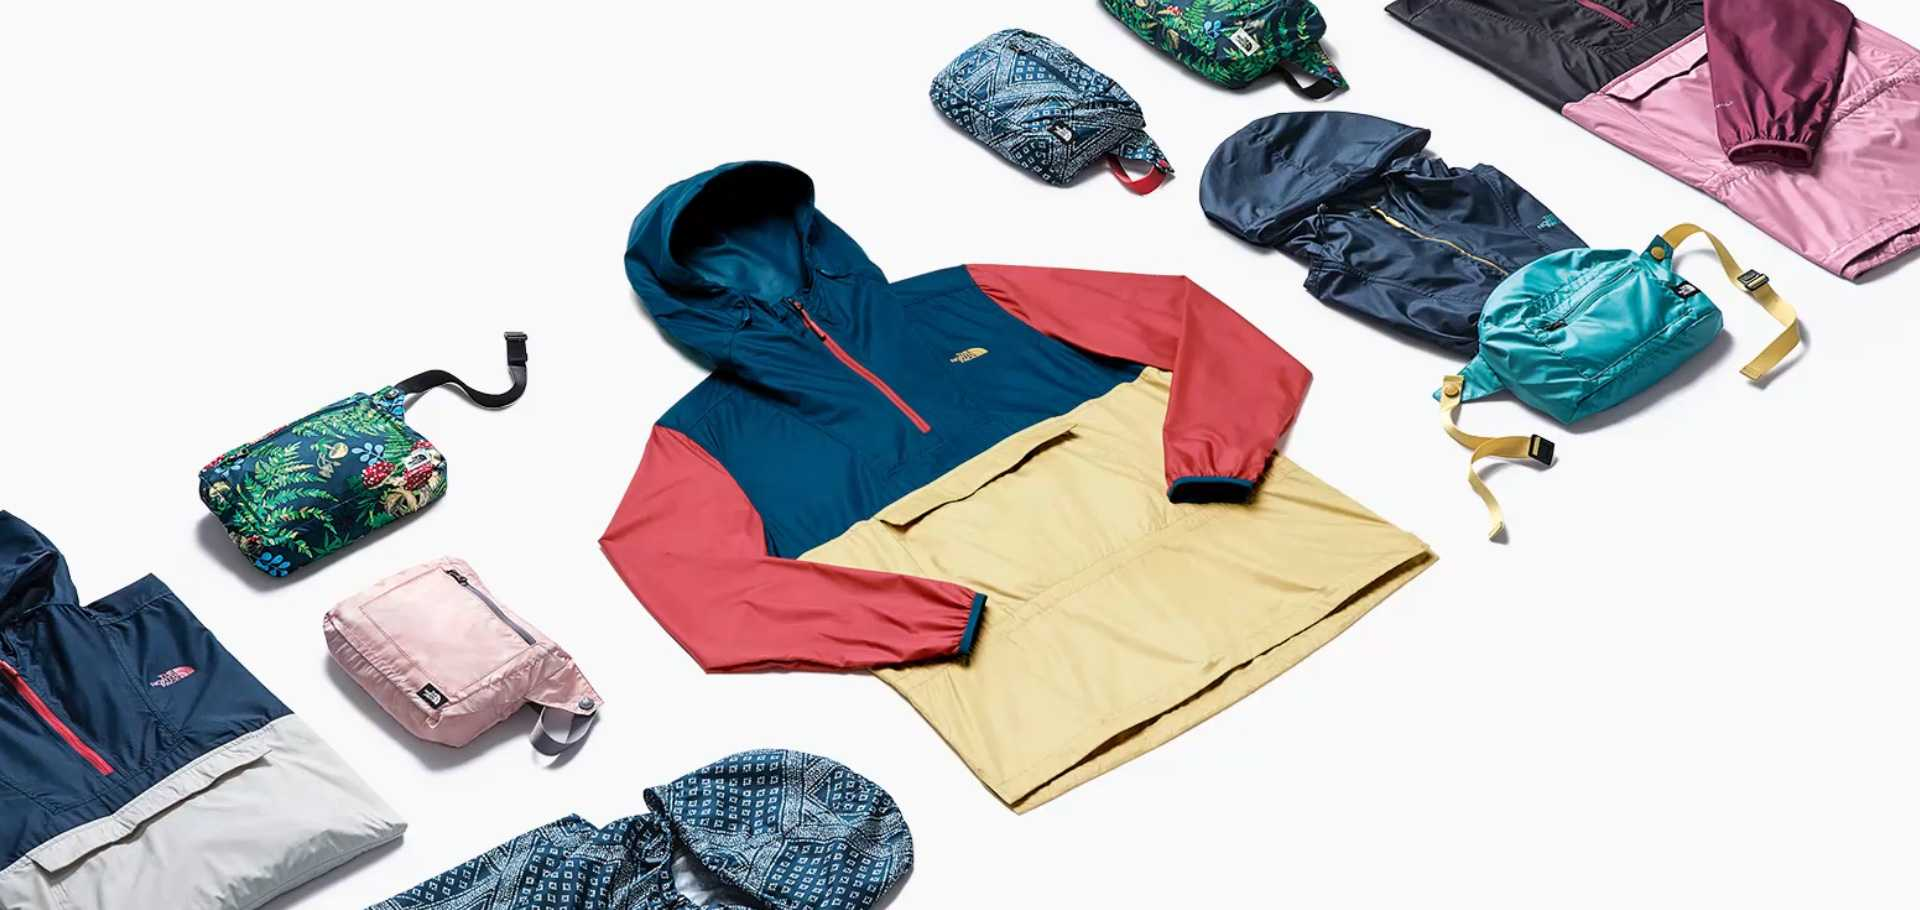 ec0b85111 Fanorak - Fanny Pack and Anorak Pullover Jacket | The North Face